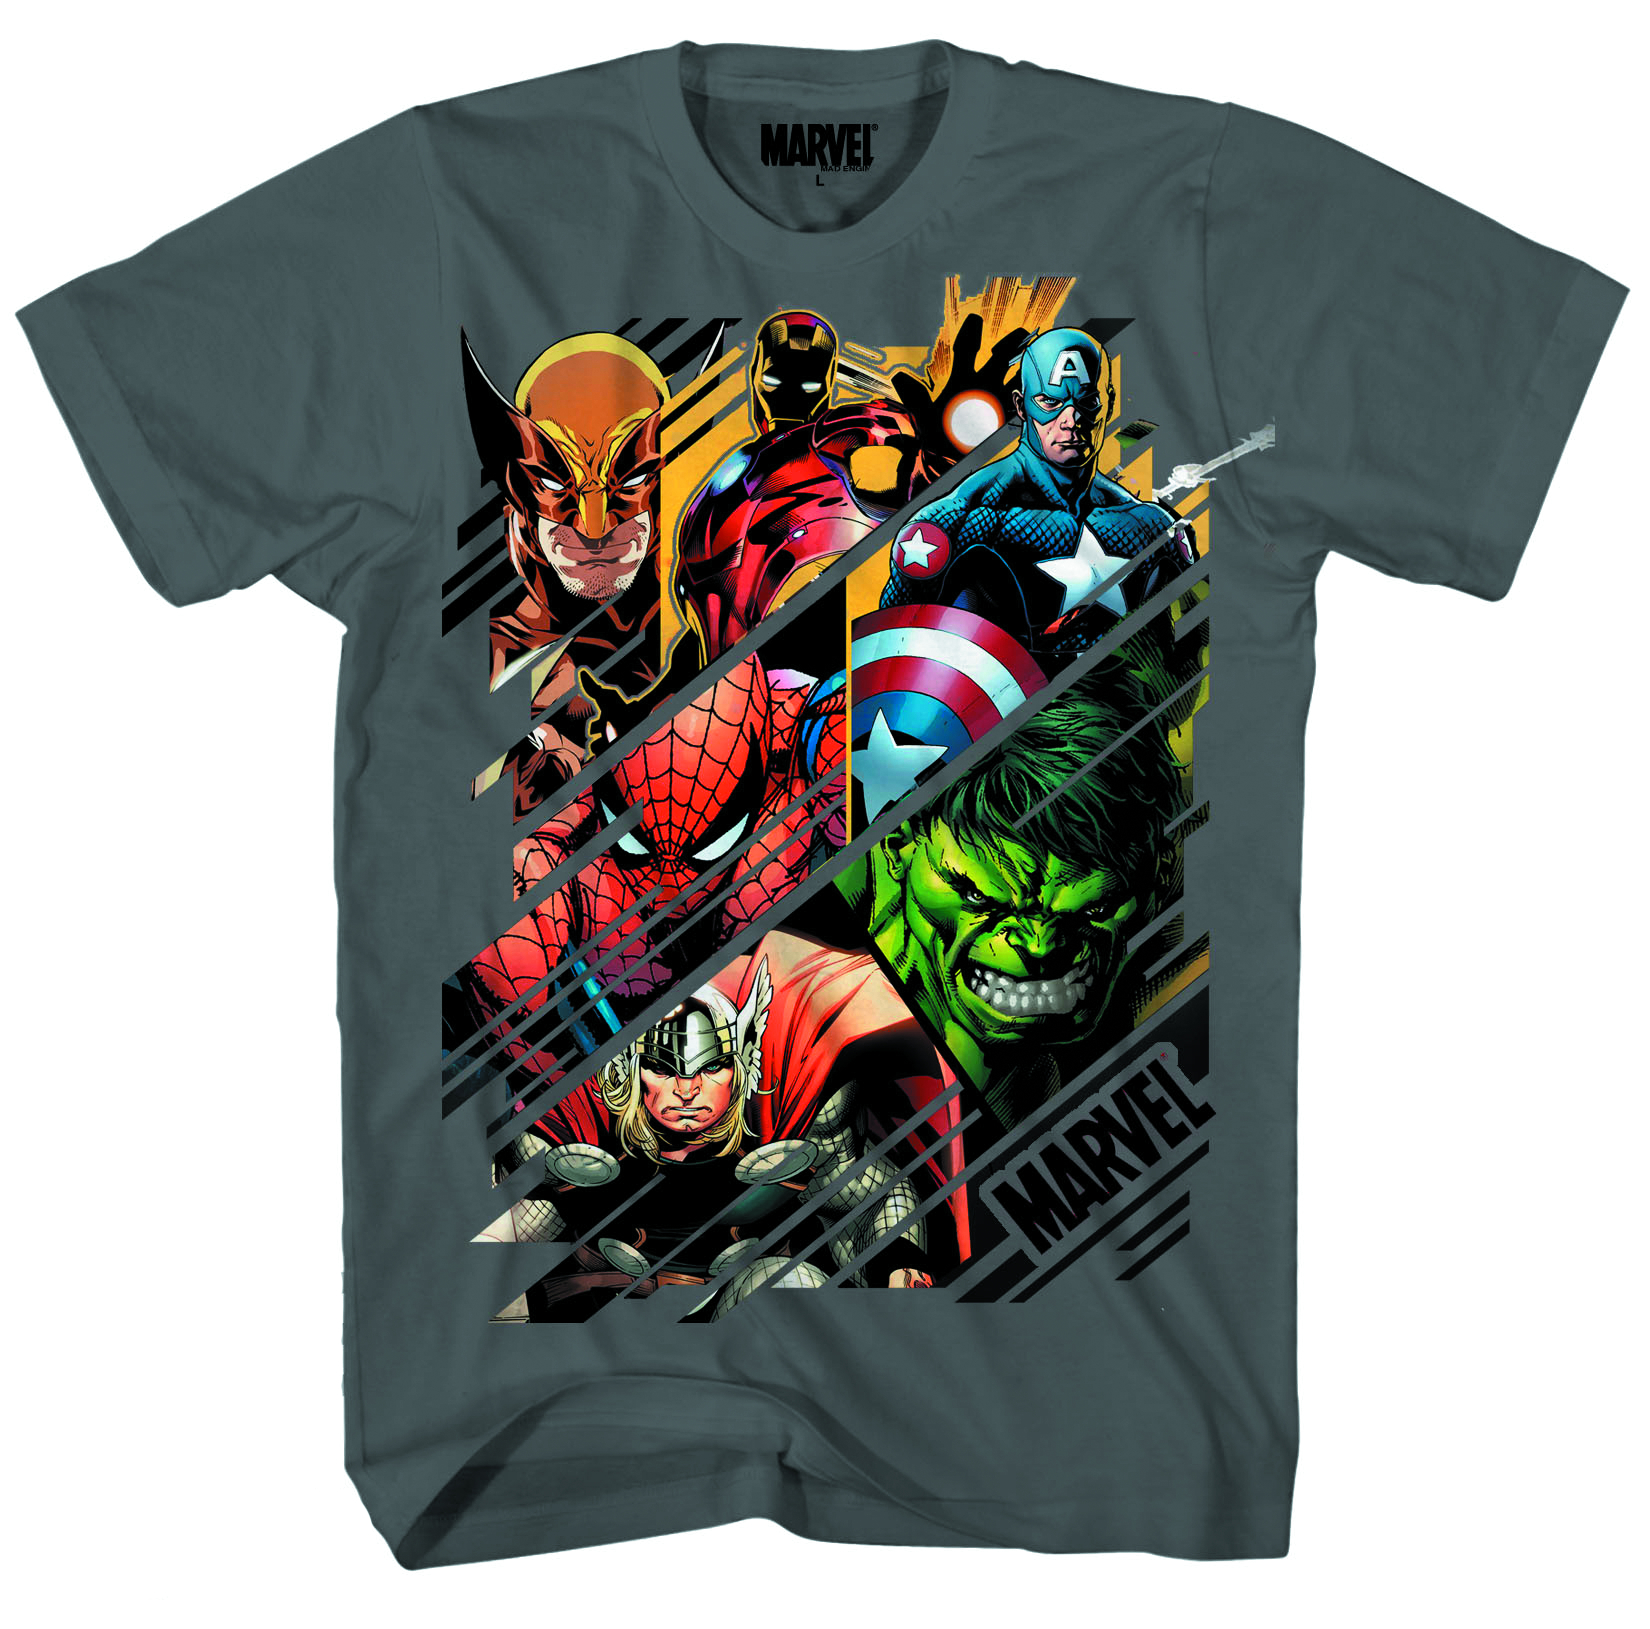 MARVEL HEROES SLICES CHARCOAL PX T/S XXL